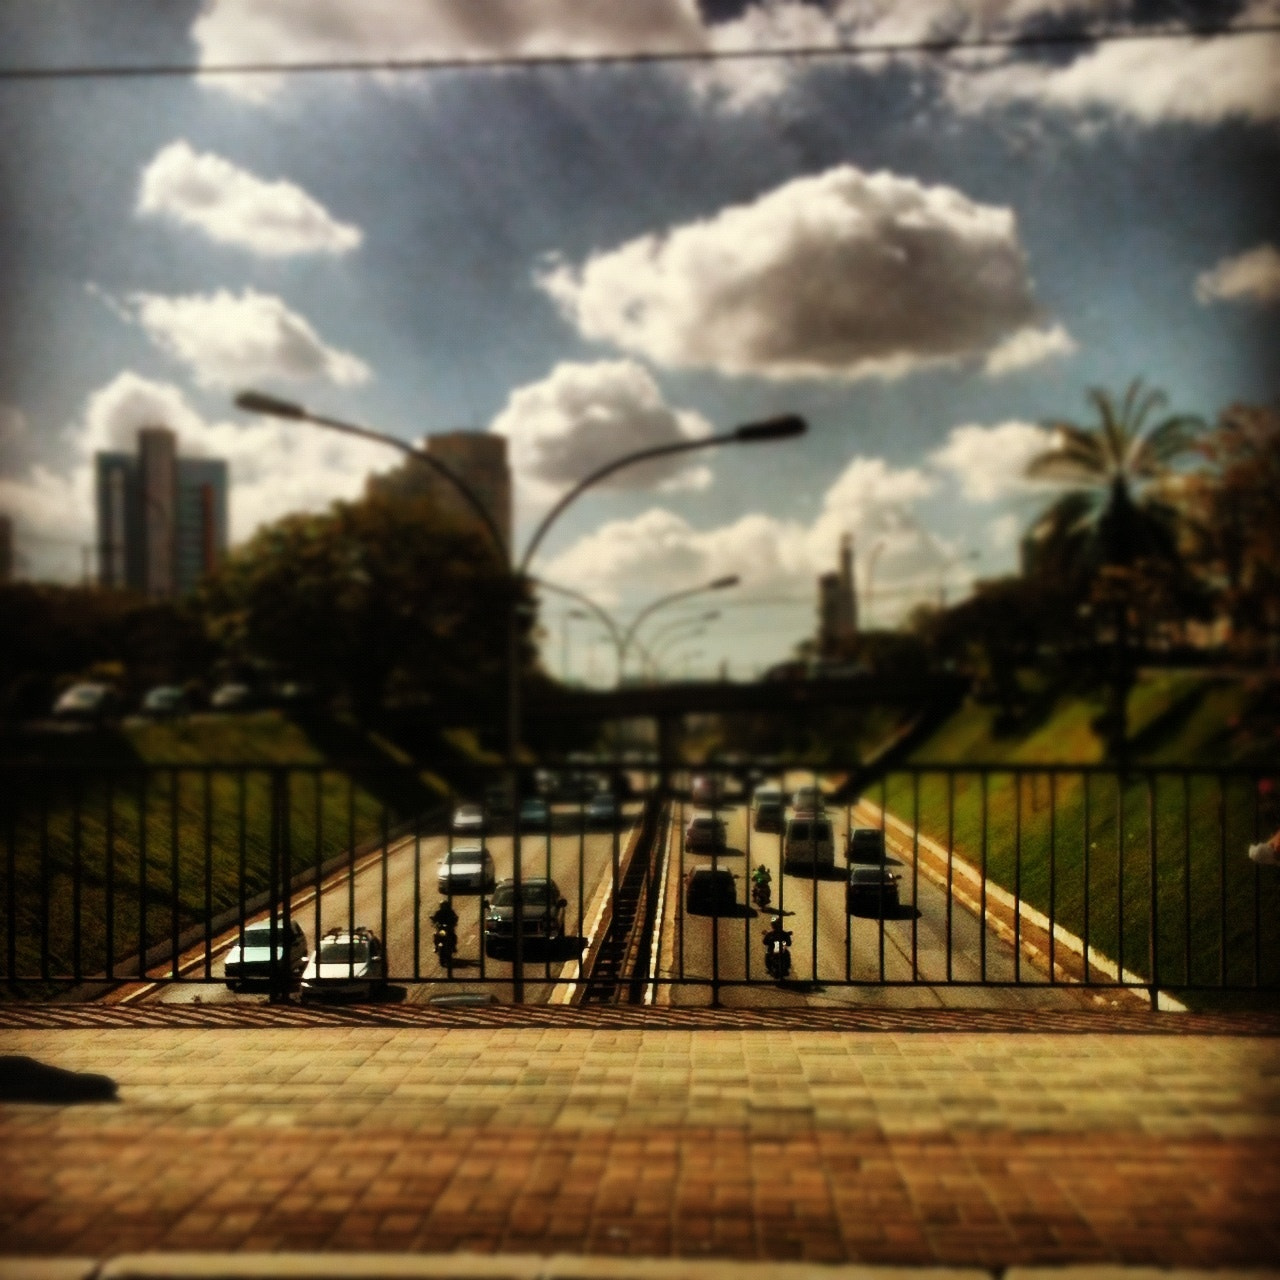 Photograph Sao Paulo - highway by Luca Ronco on 500px